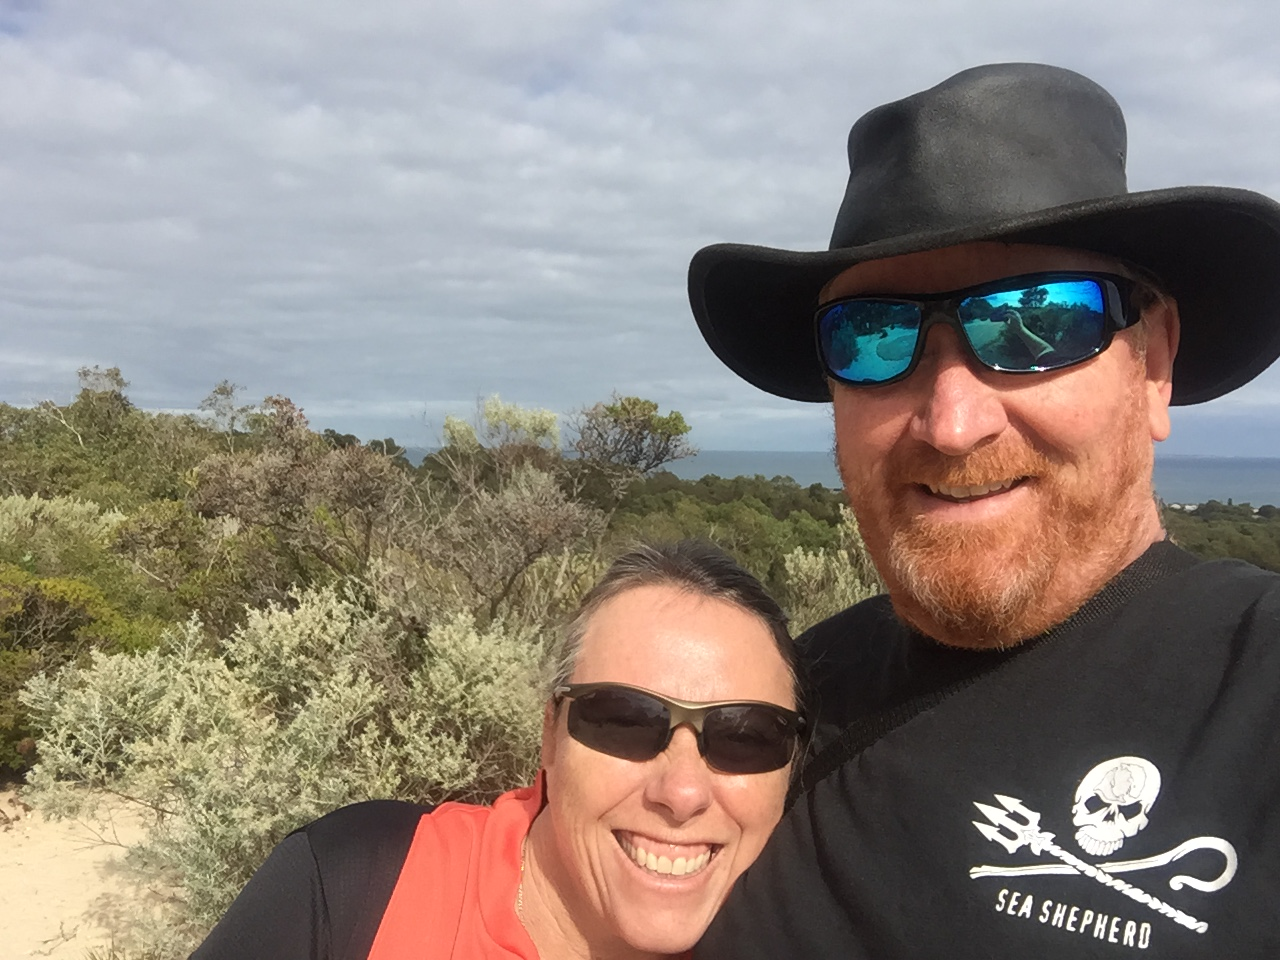 The great ocean views make you smile at Bold Park (Rottnest Island in background)